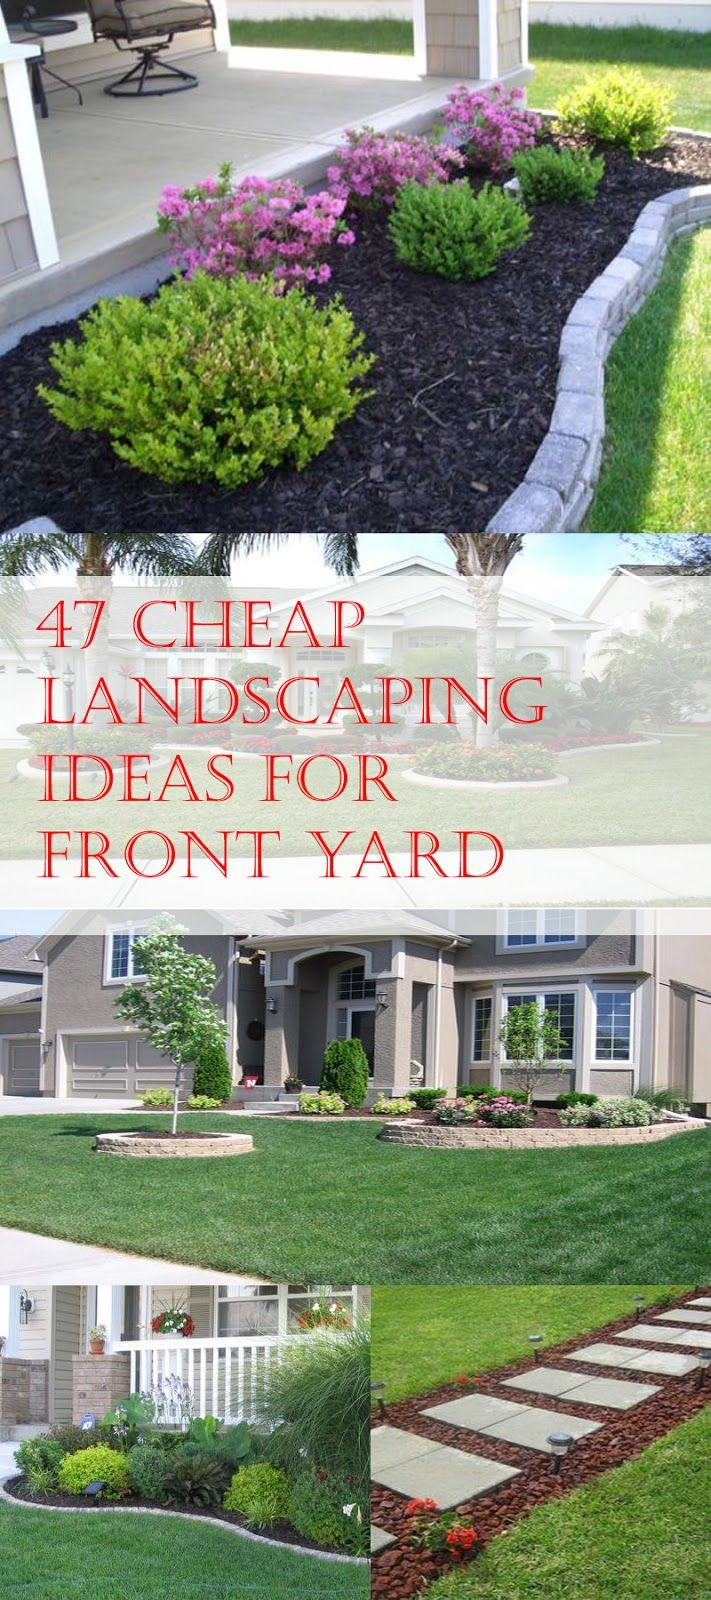 47 Cheap Landscaping Ideas For Front Yard ไอเดียแต่งสวน